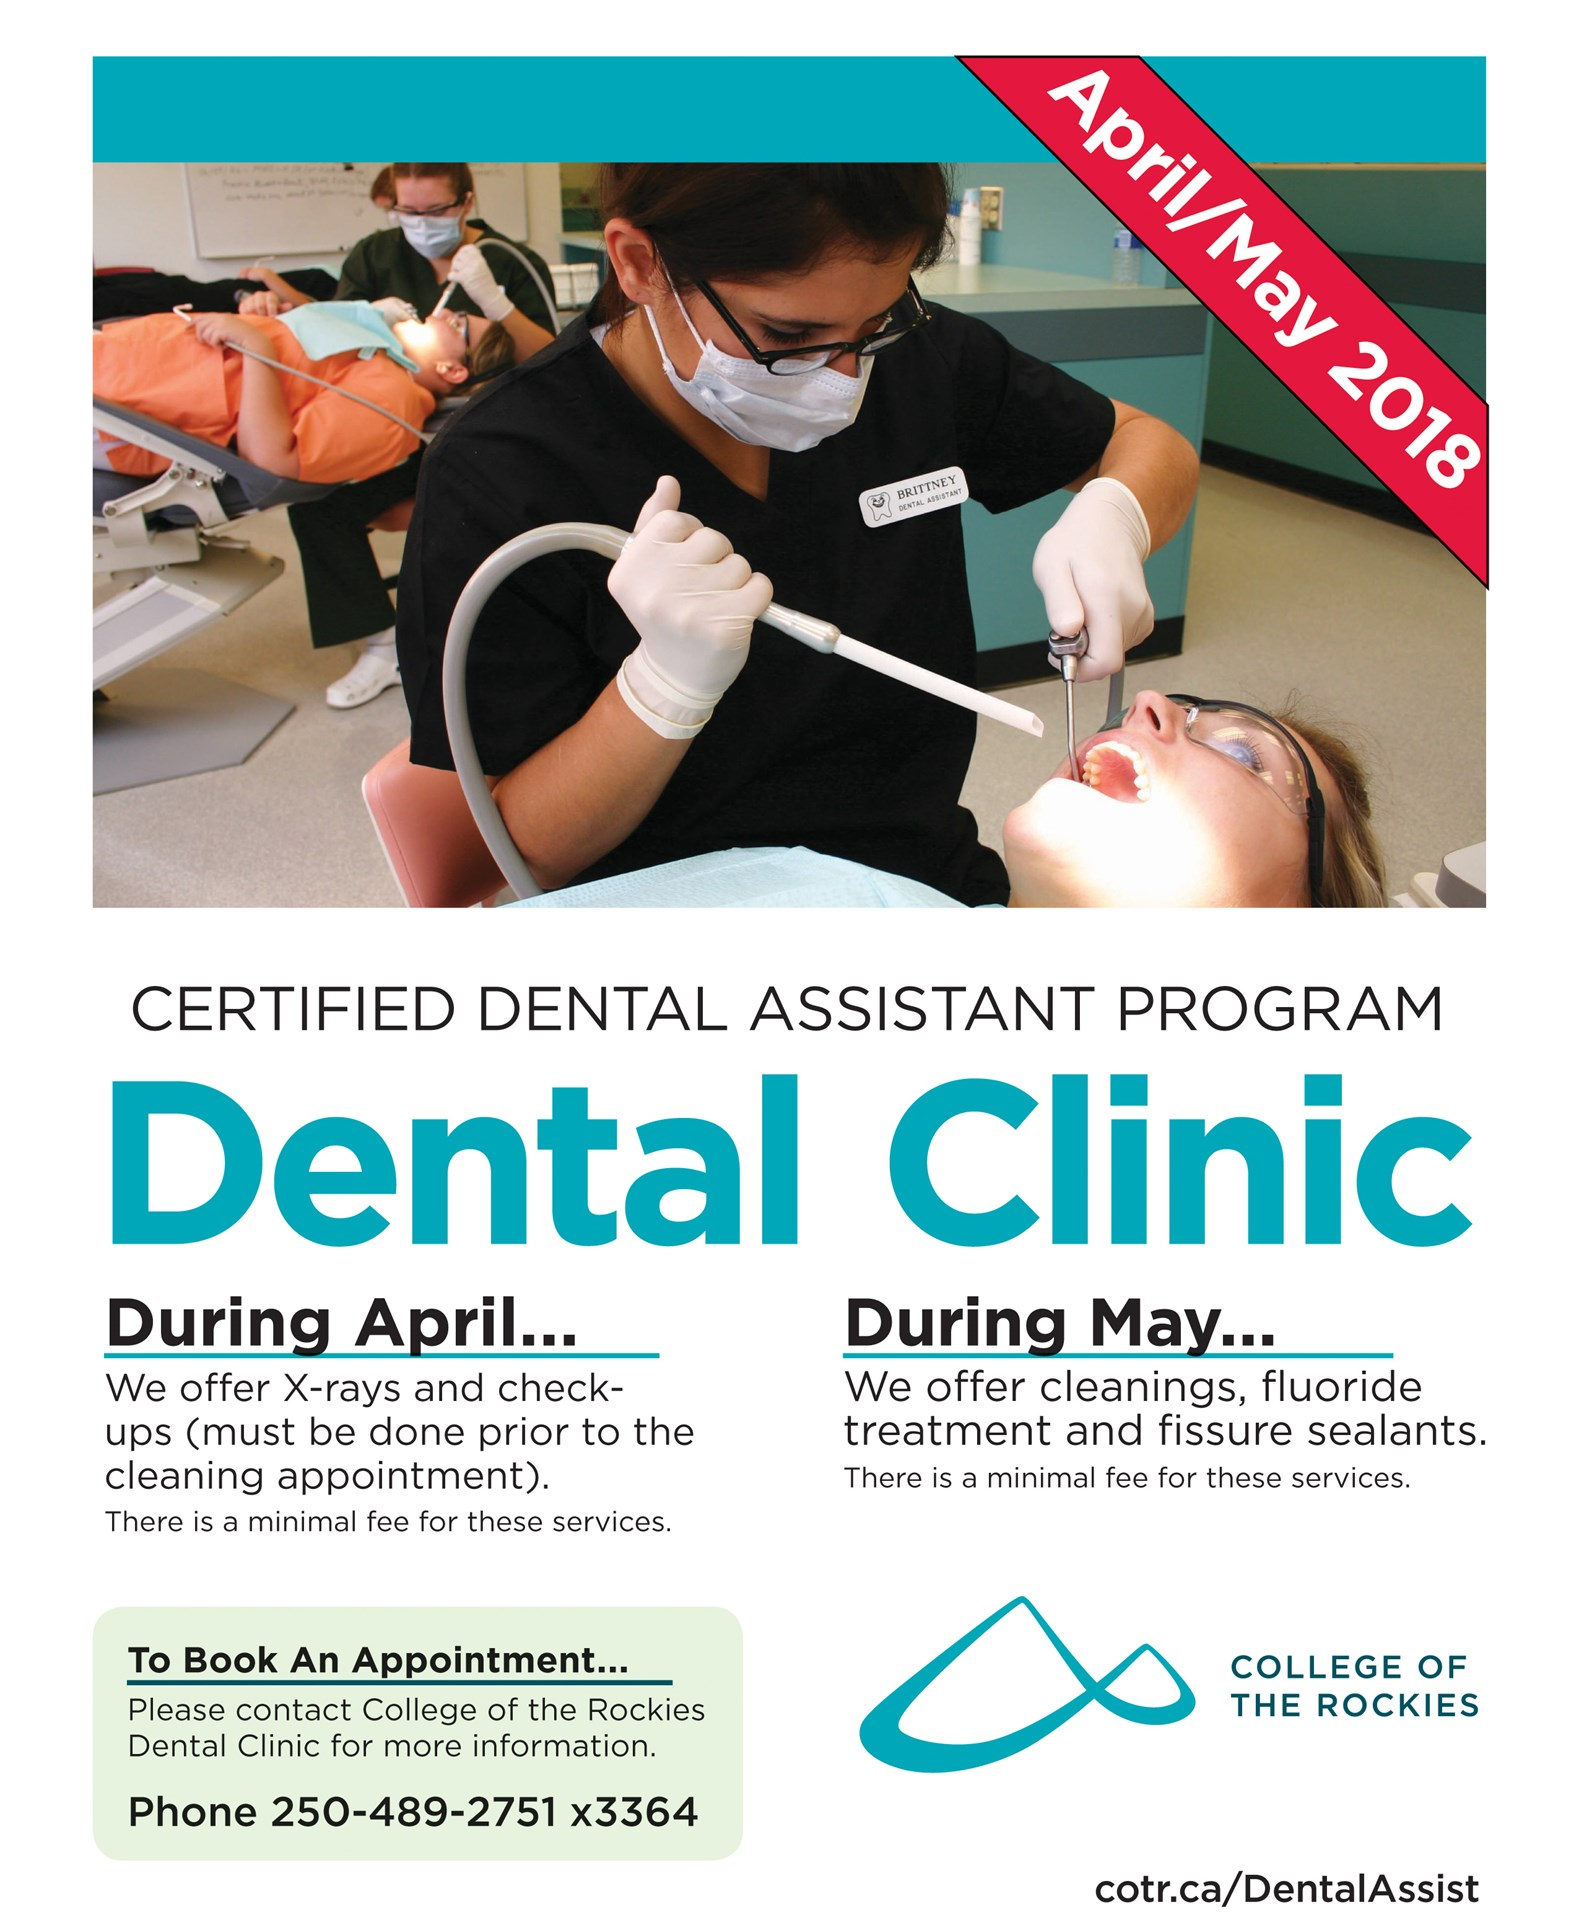 Dental Clinic at the College of the Rockies